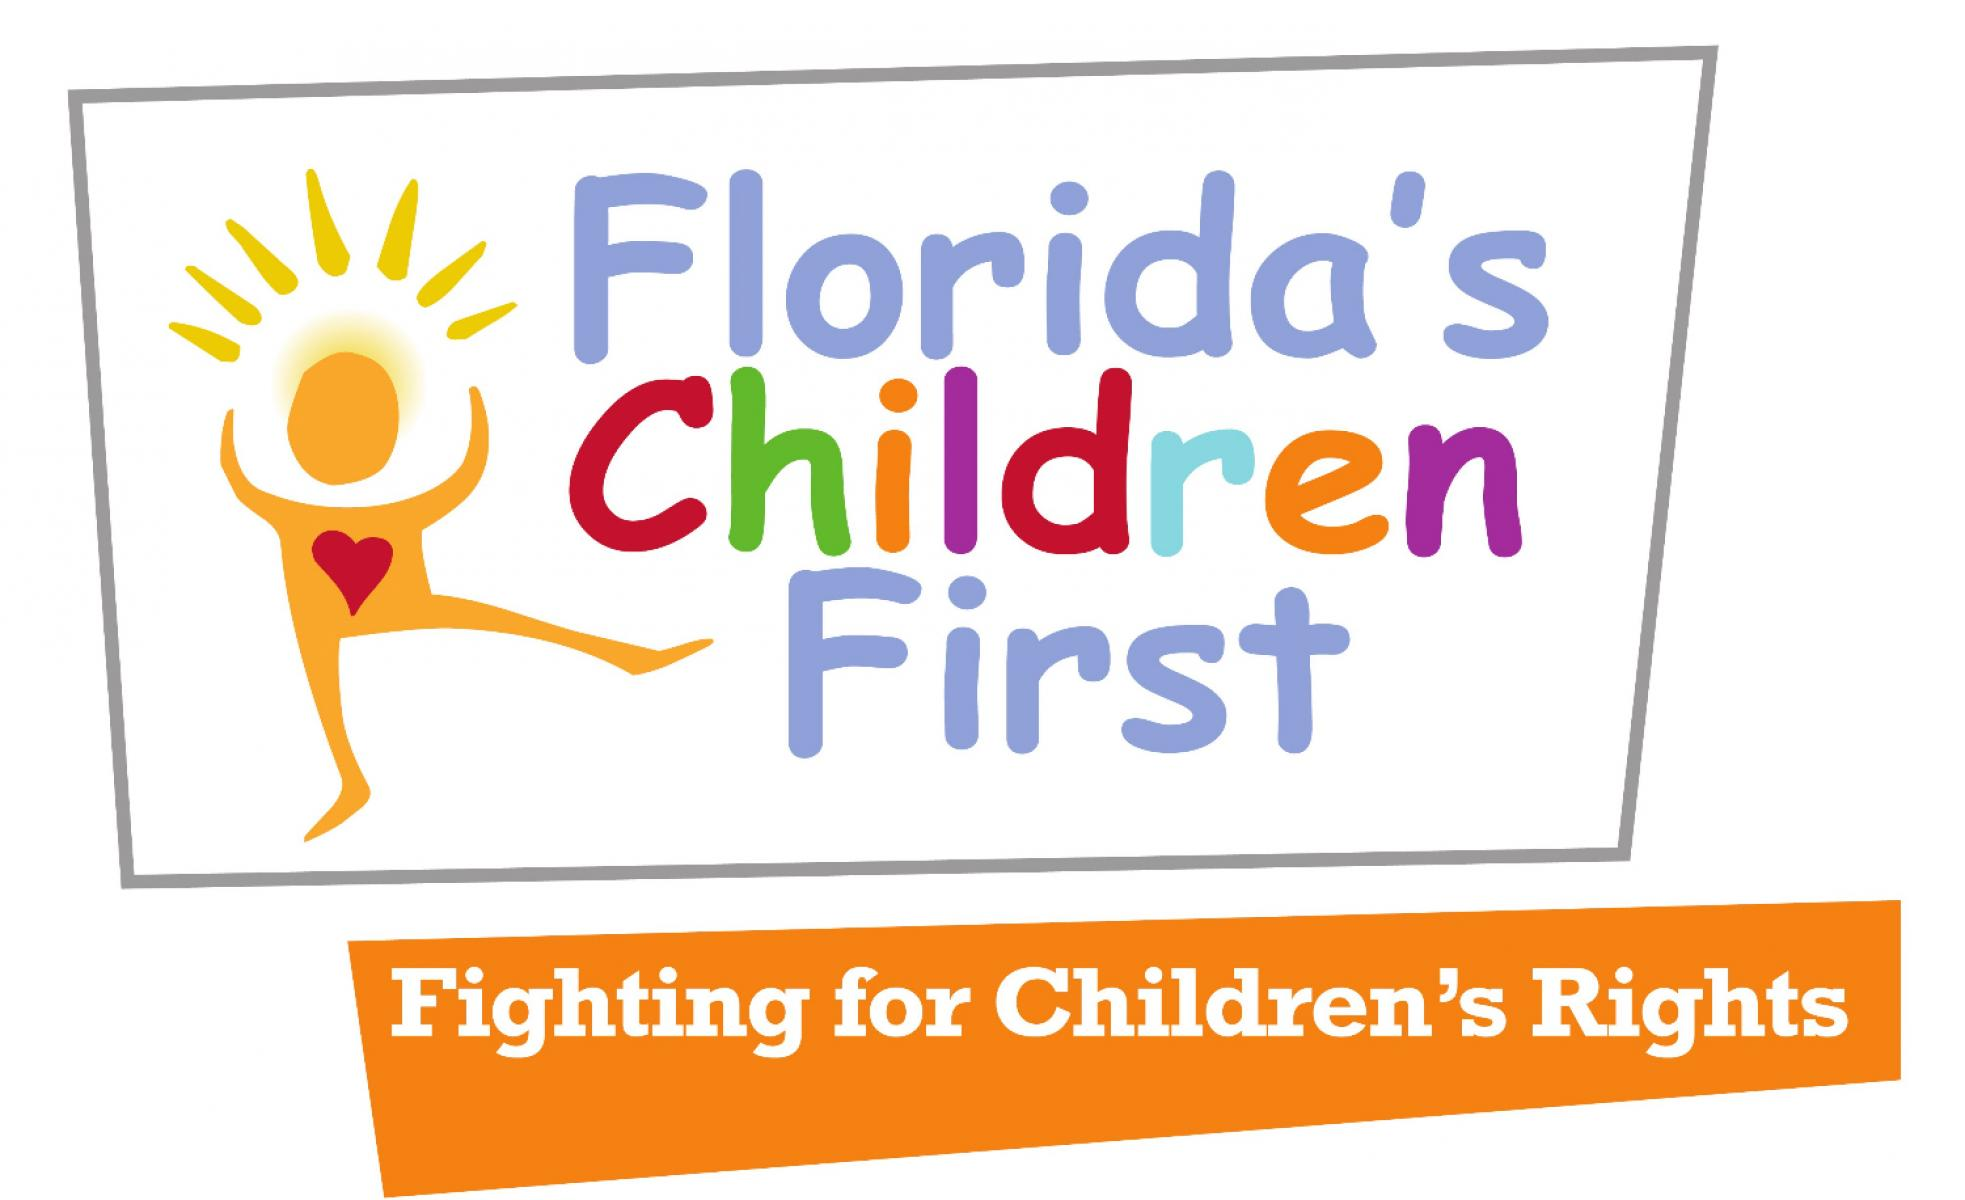 florida's children first